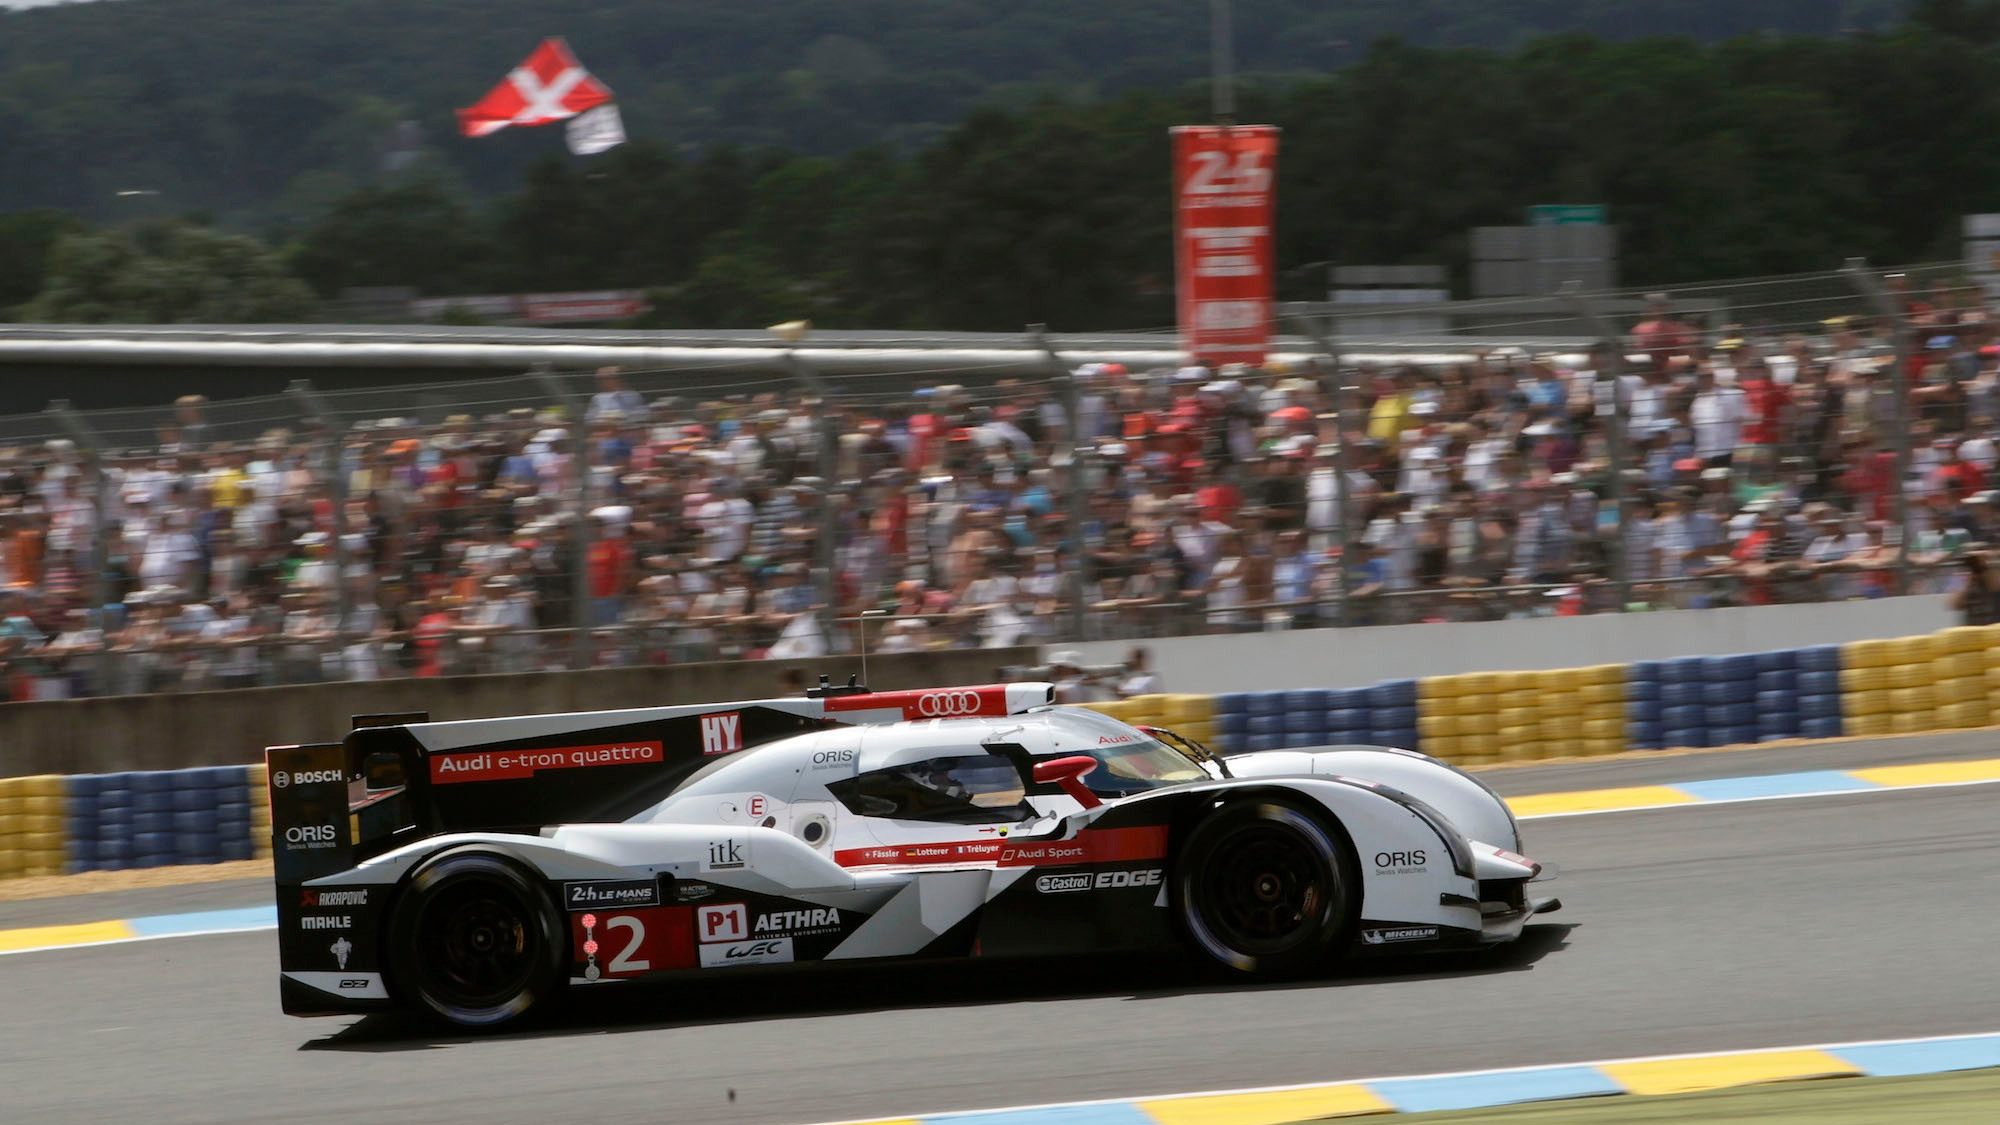 Audi celebrates its 13th Le Mans 24 Hours win in 2014